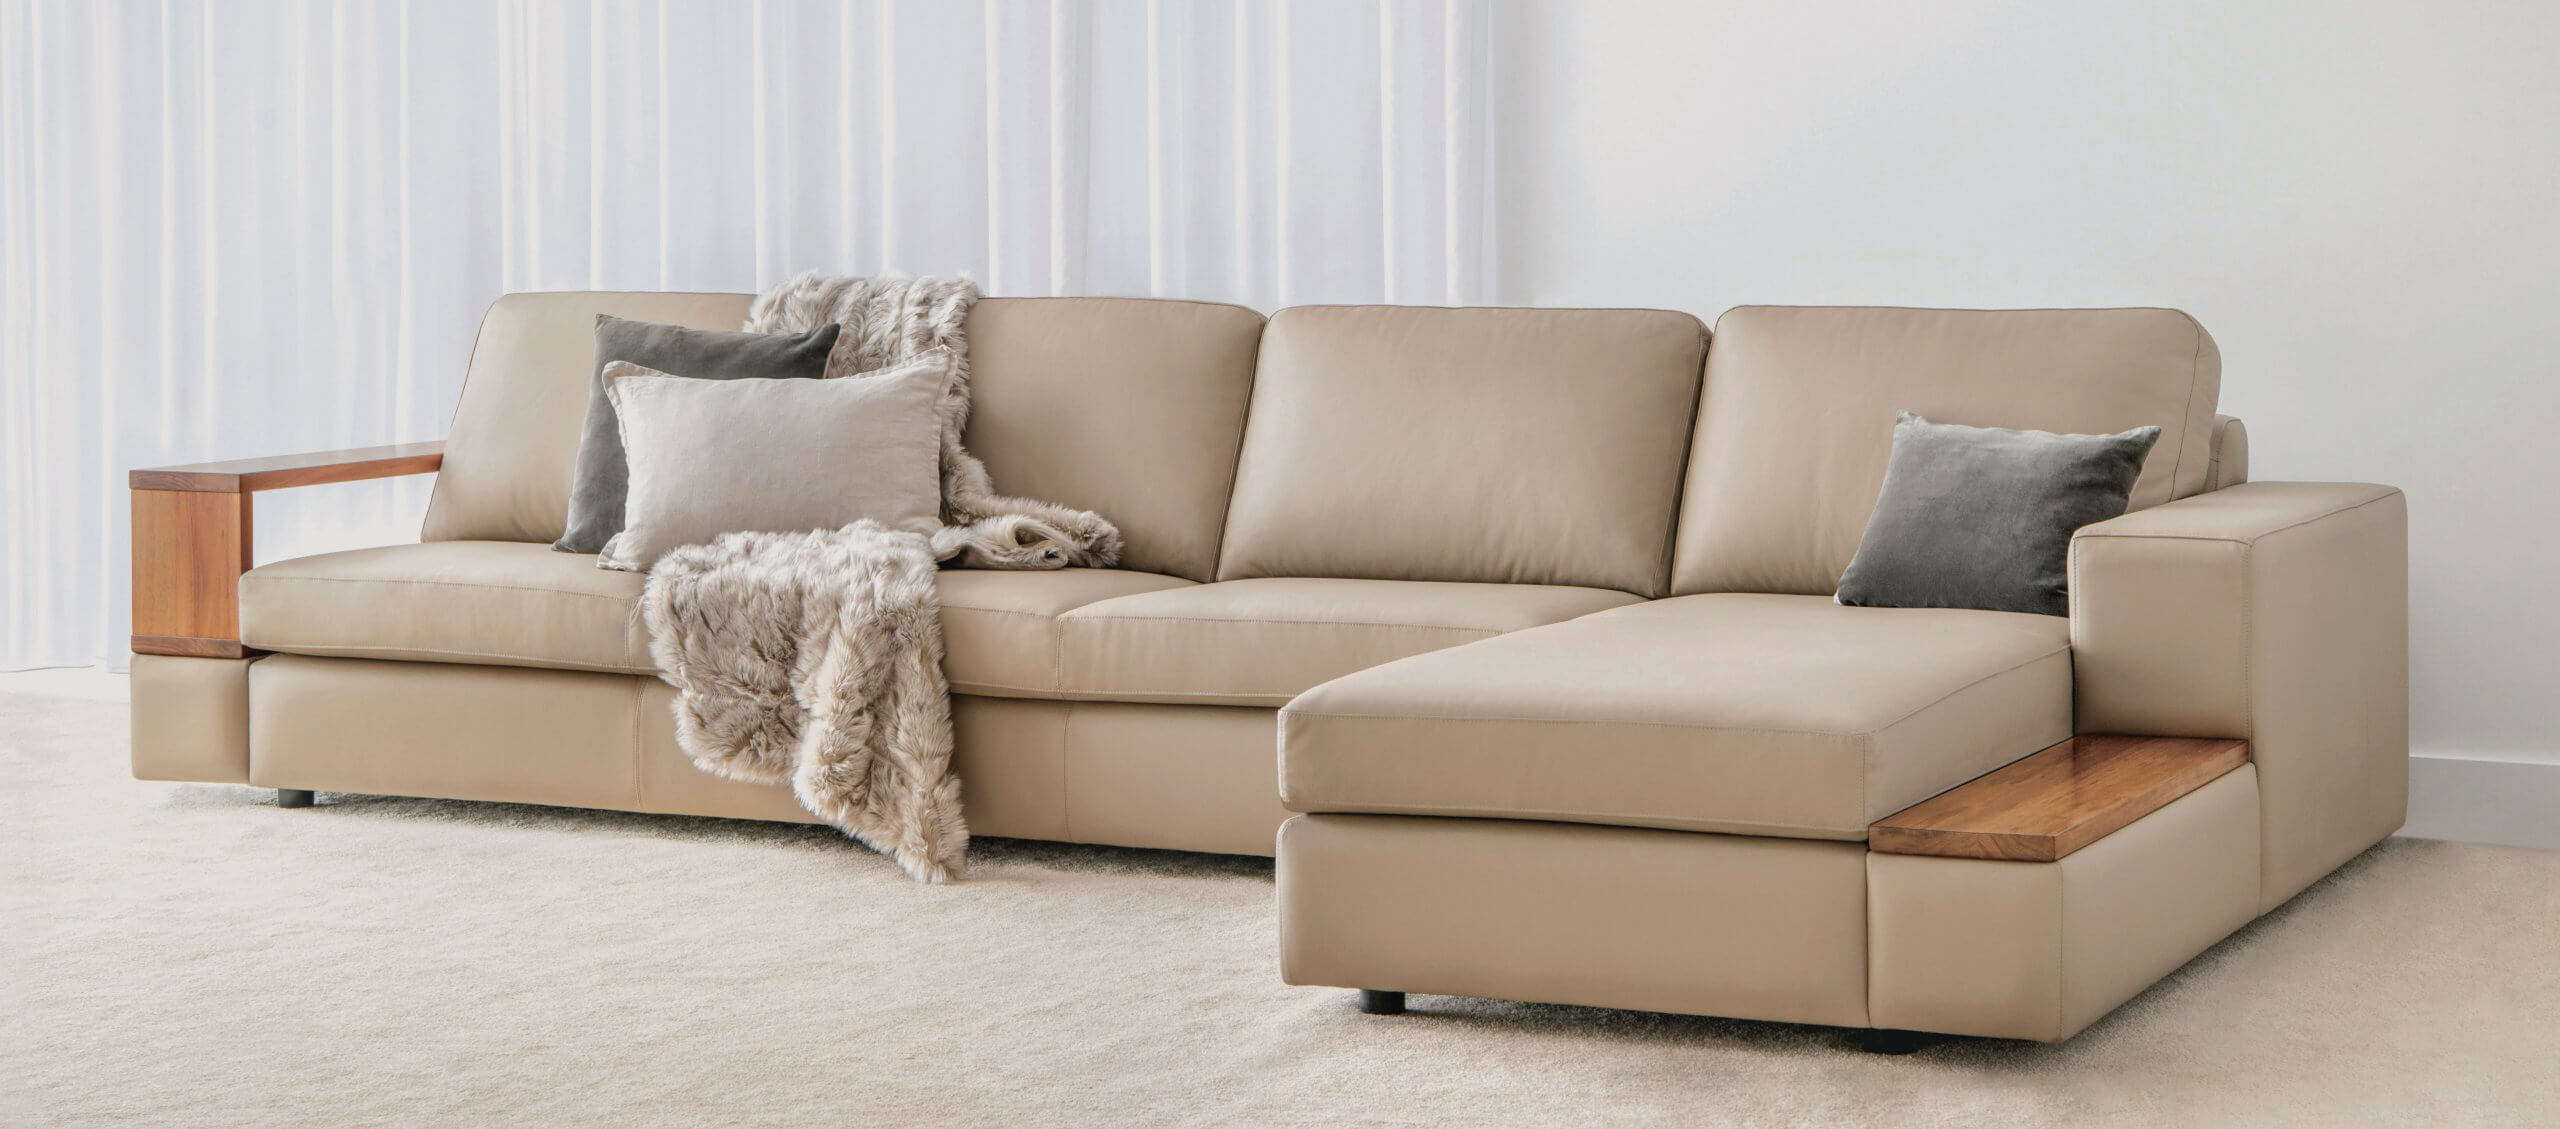 modular sofa upholstered in leather with wide cushions and timber arm features